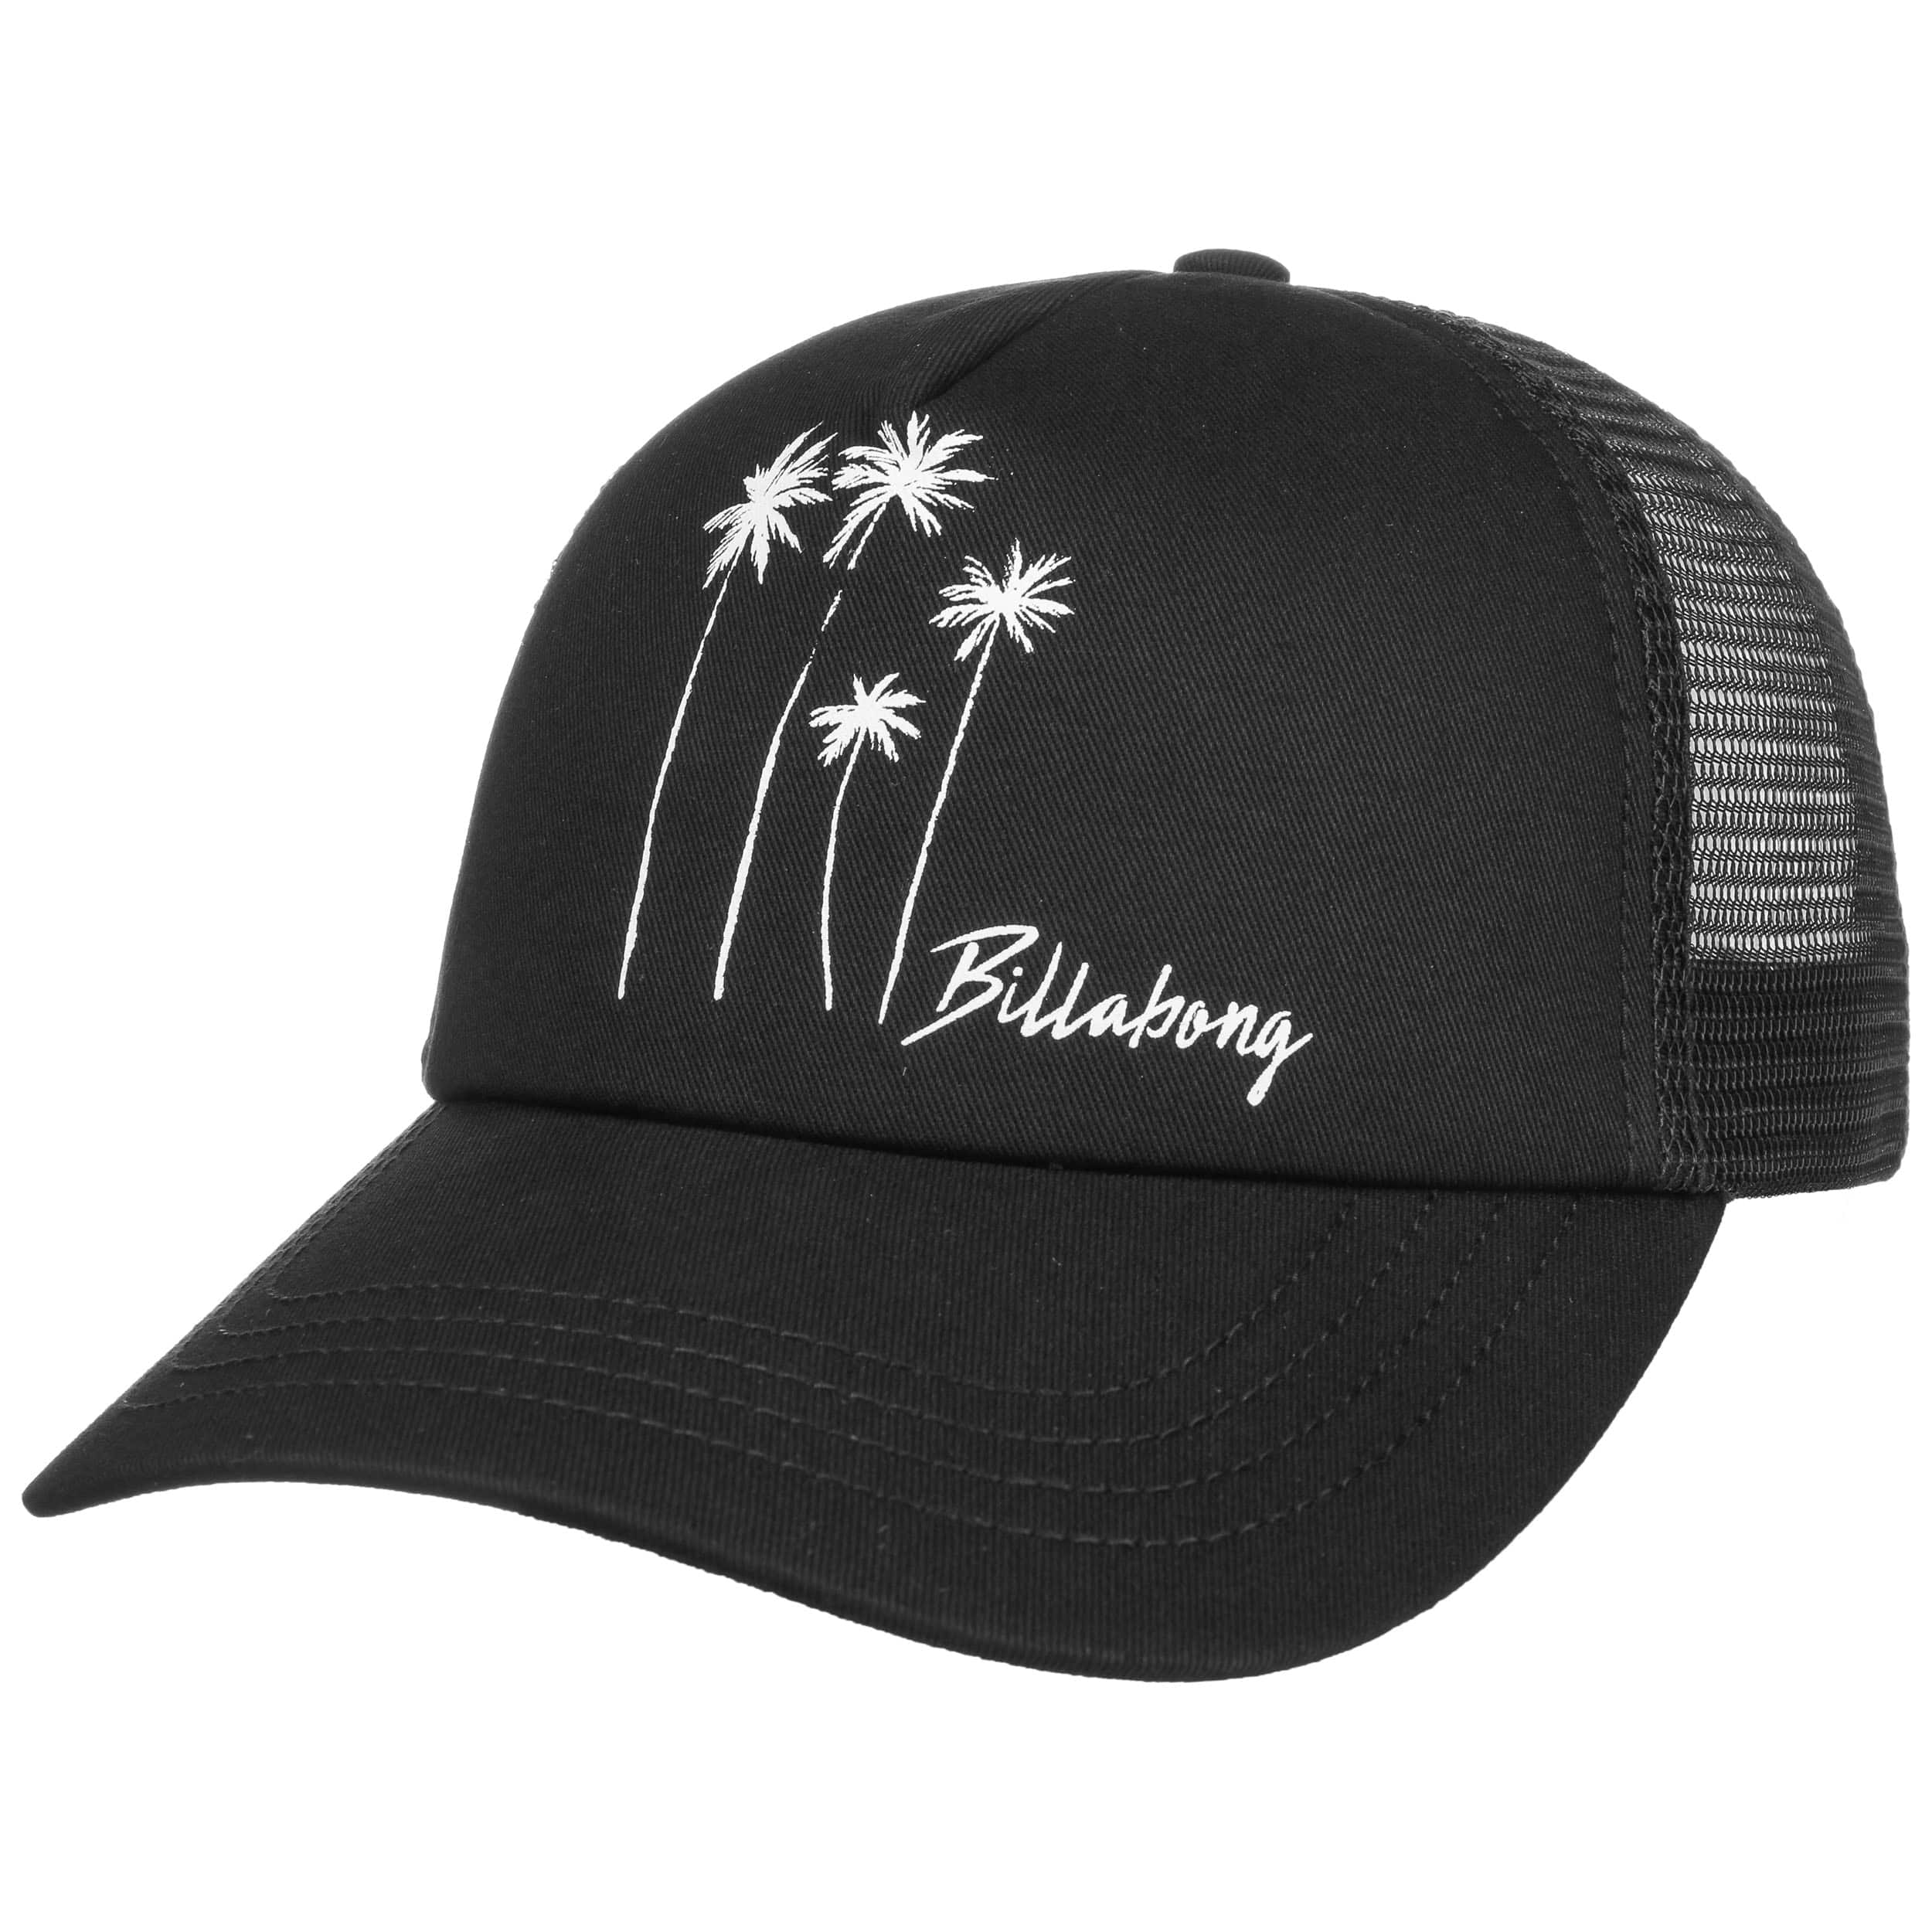 énorme réduction 1bed8 5221c Casquette Trucker Aloha Forever by Billabong